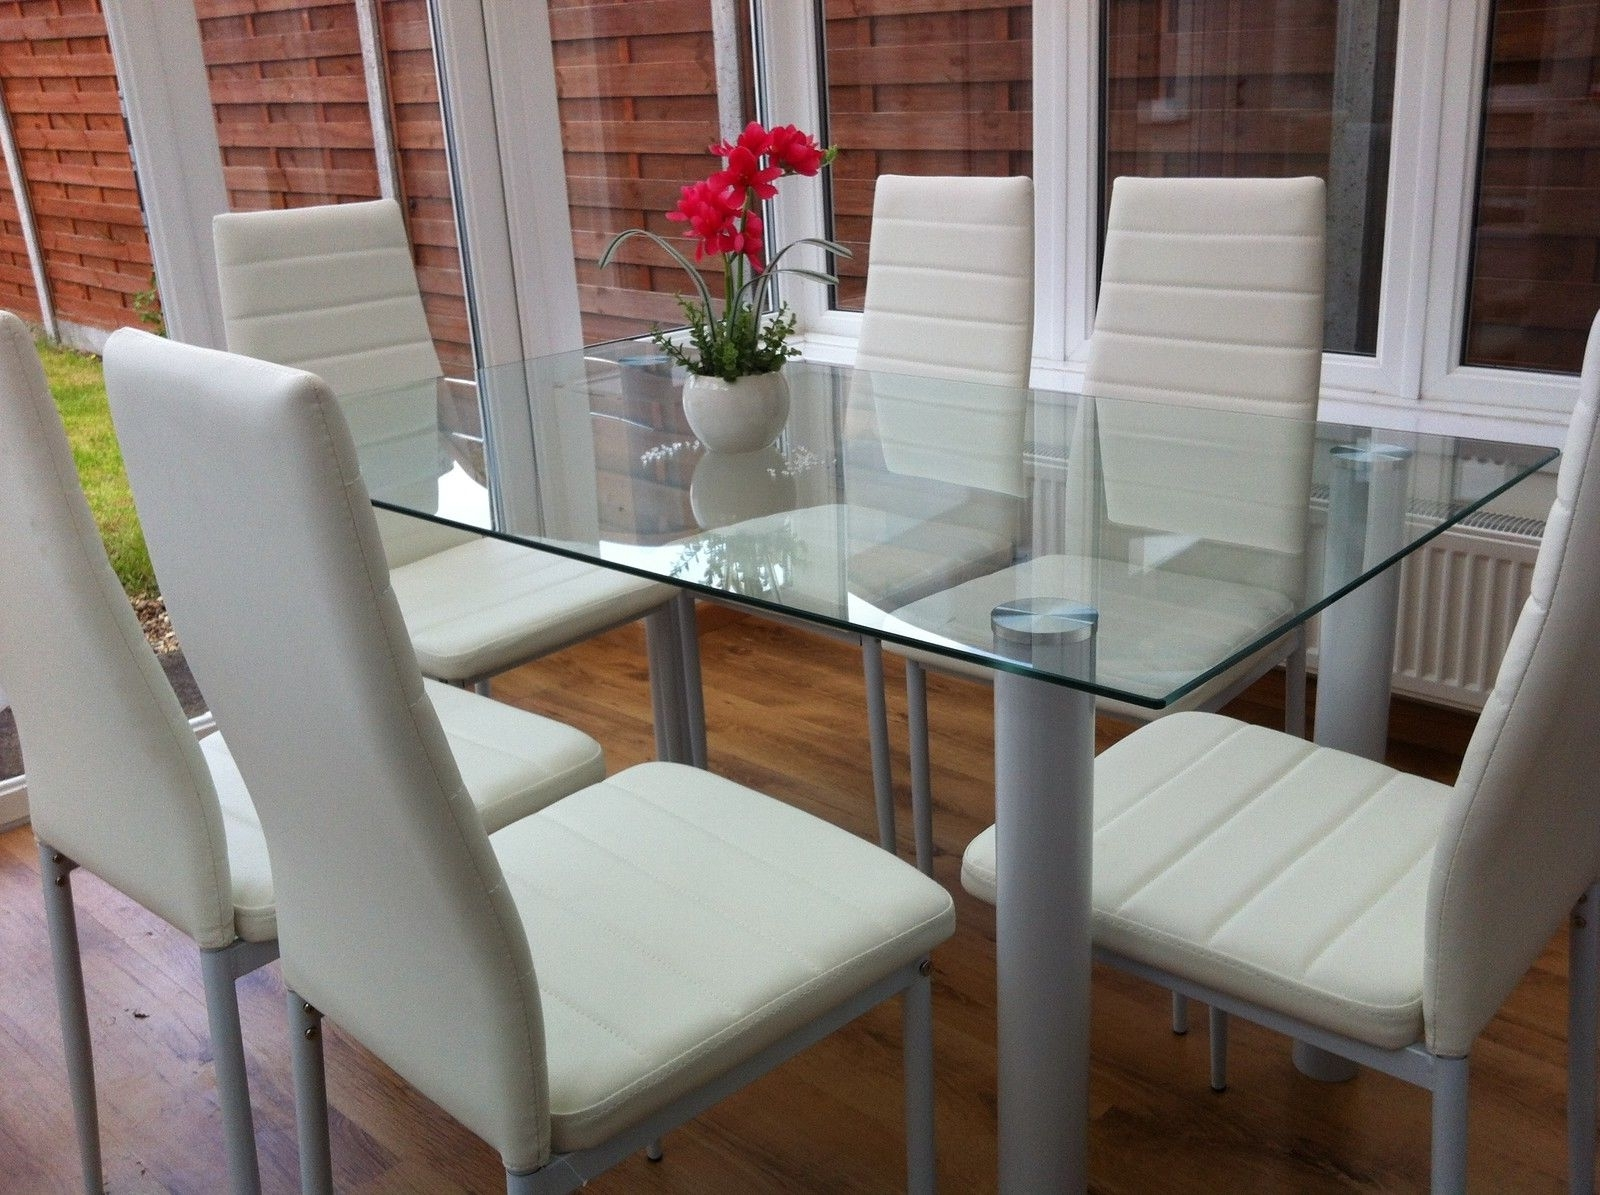 Stunning Glass Dining Table Set And With 4 Or 6 Faux Leather Chairs Regarding 2017 White Glass Dining Tables And Chairs (View 18 of 25)